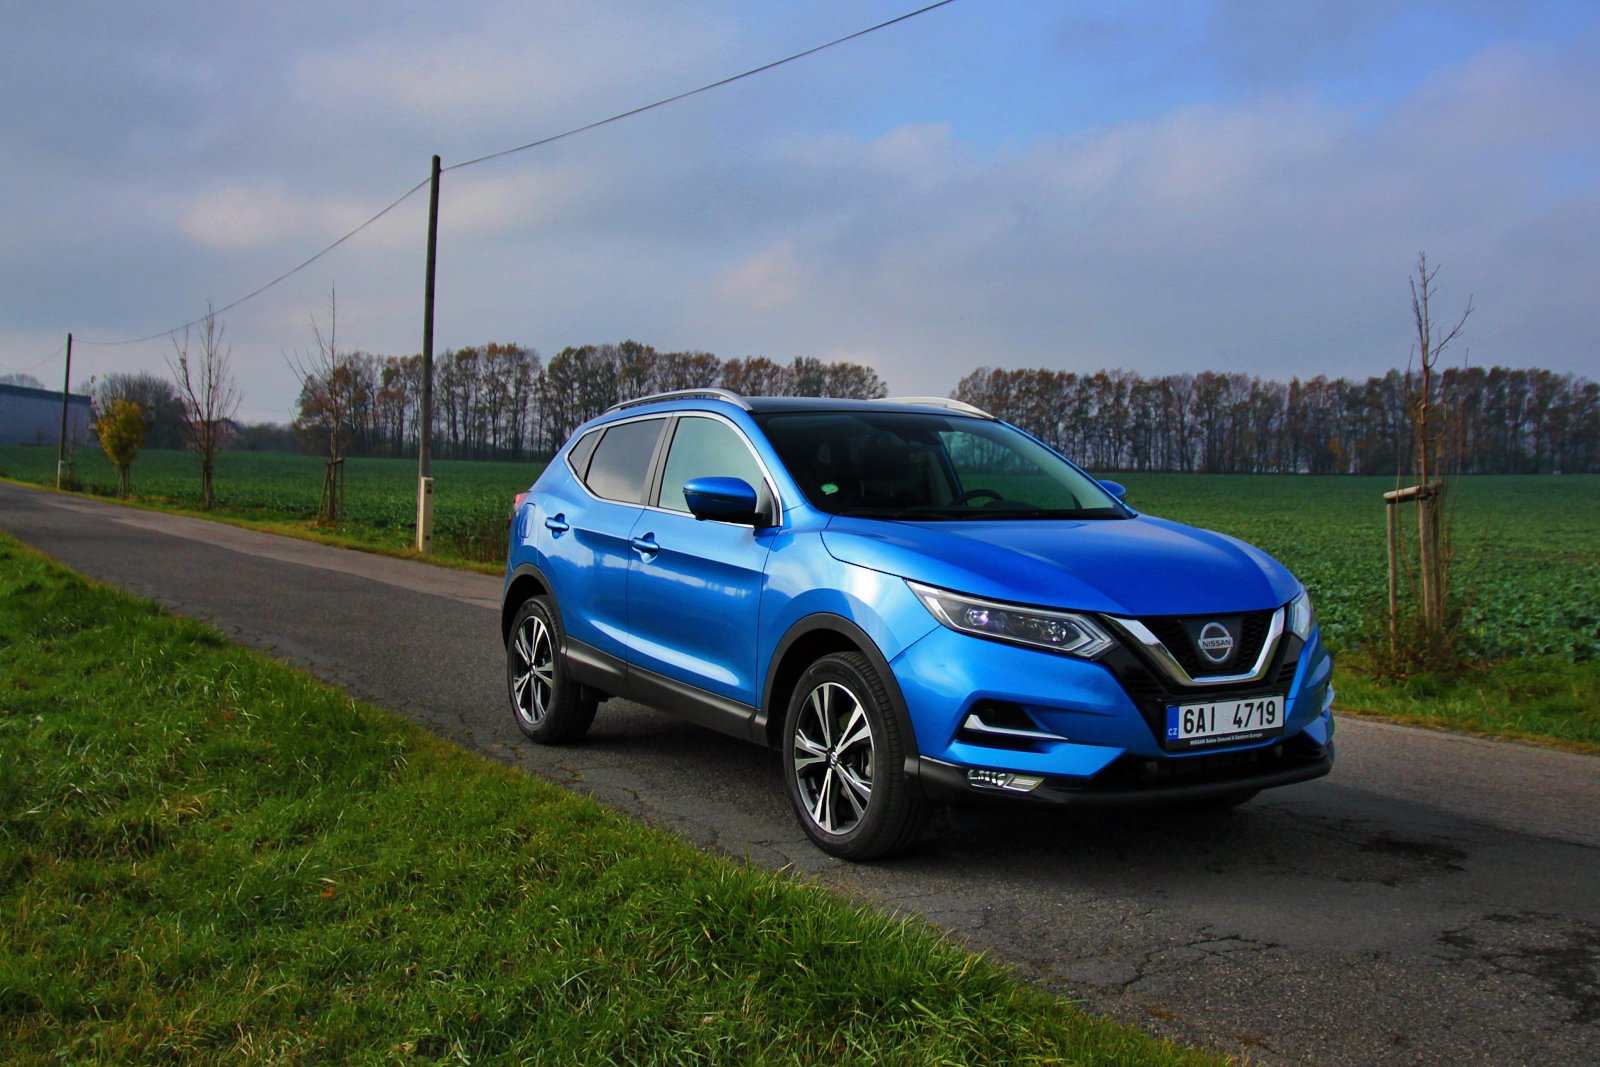 test nissan qashqai 1 6 dig t 120 kw. Black Bedroom Furniture Sets. Home Design Ideas